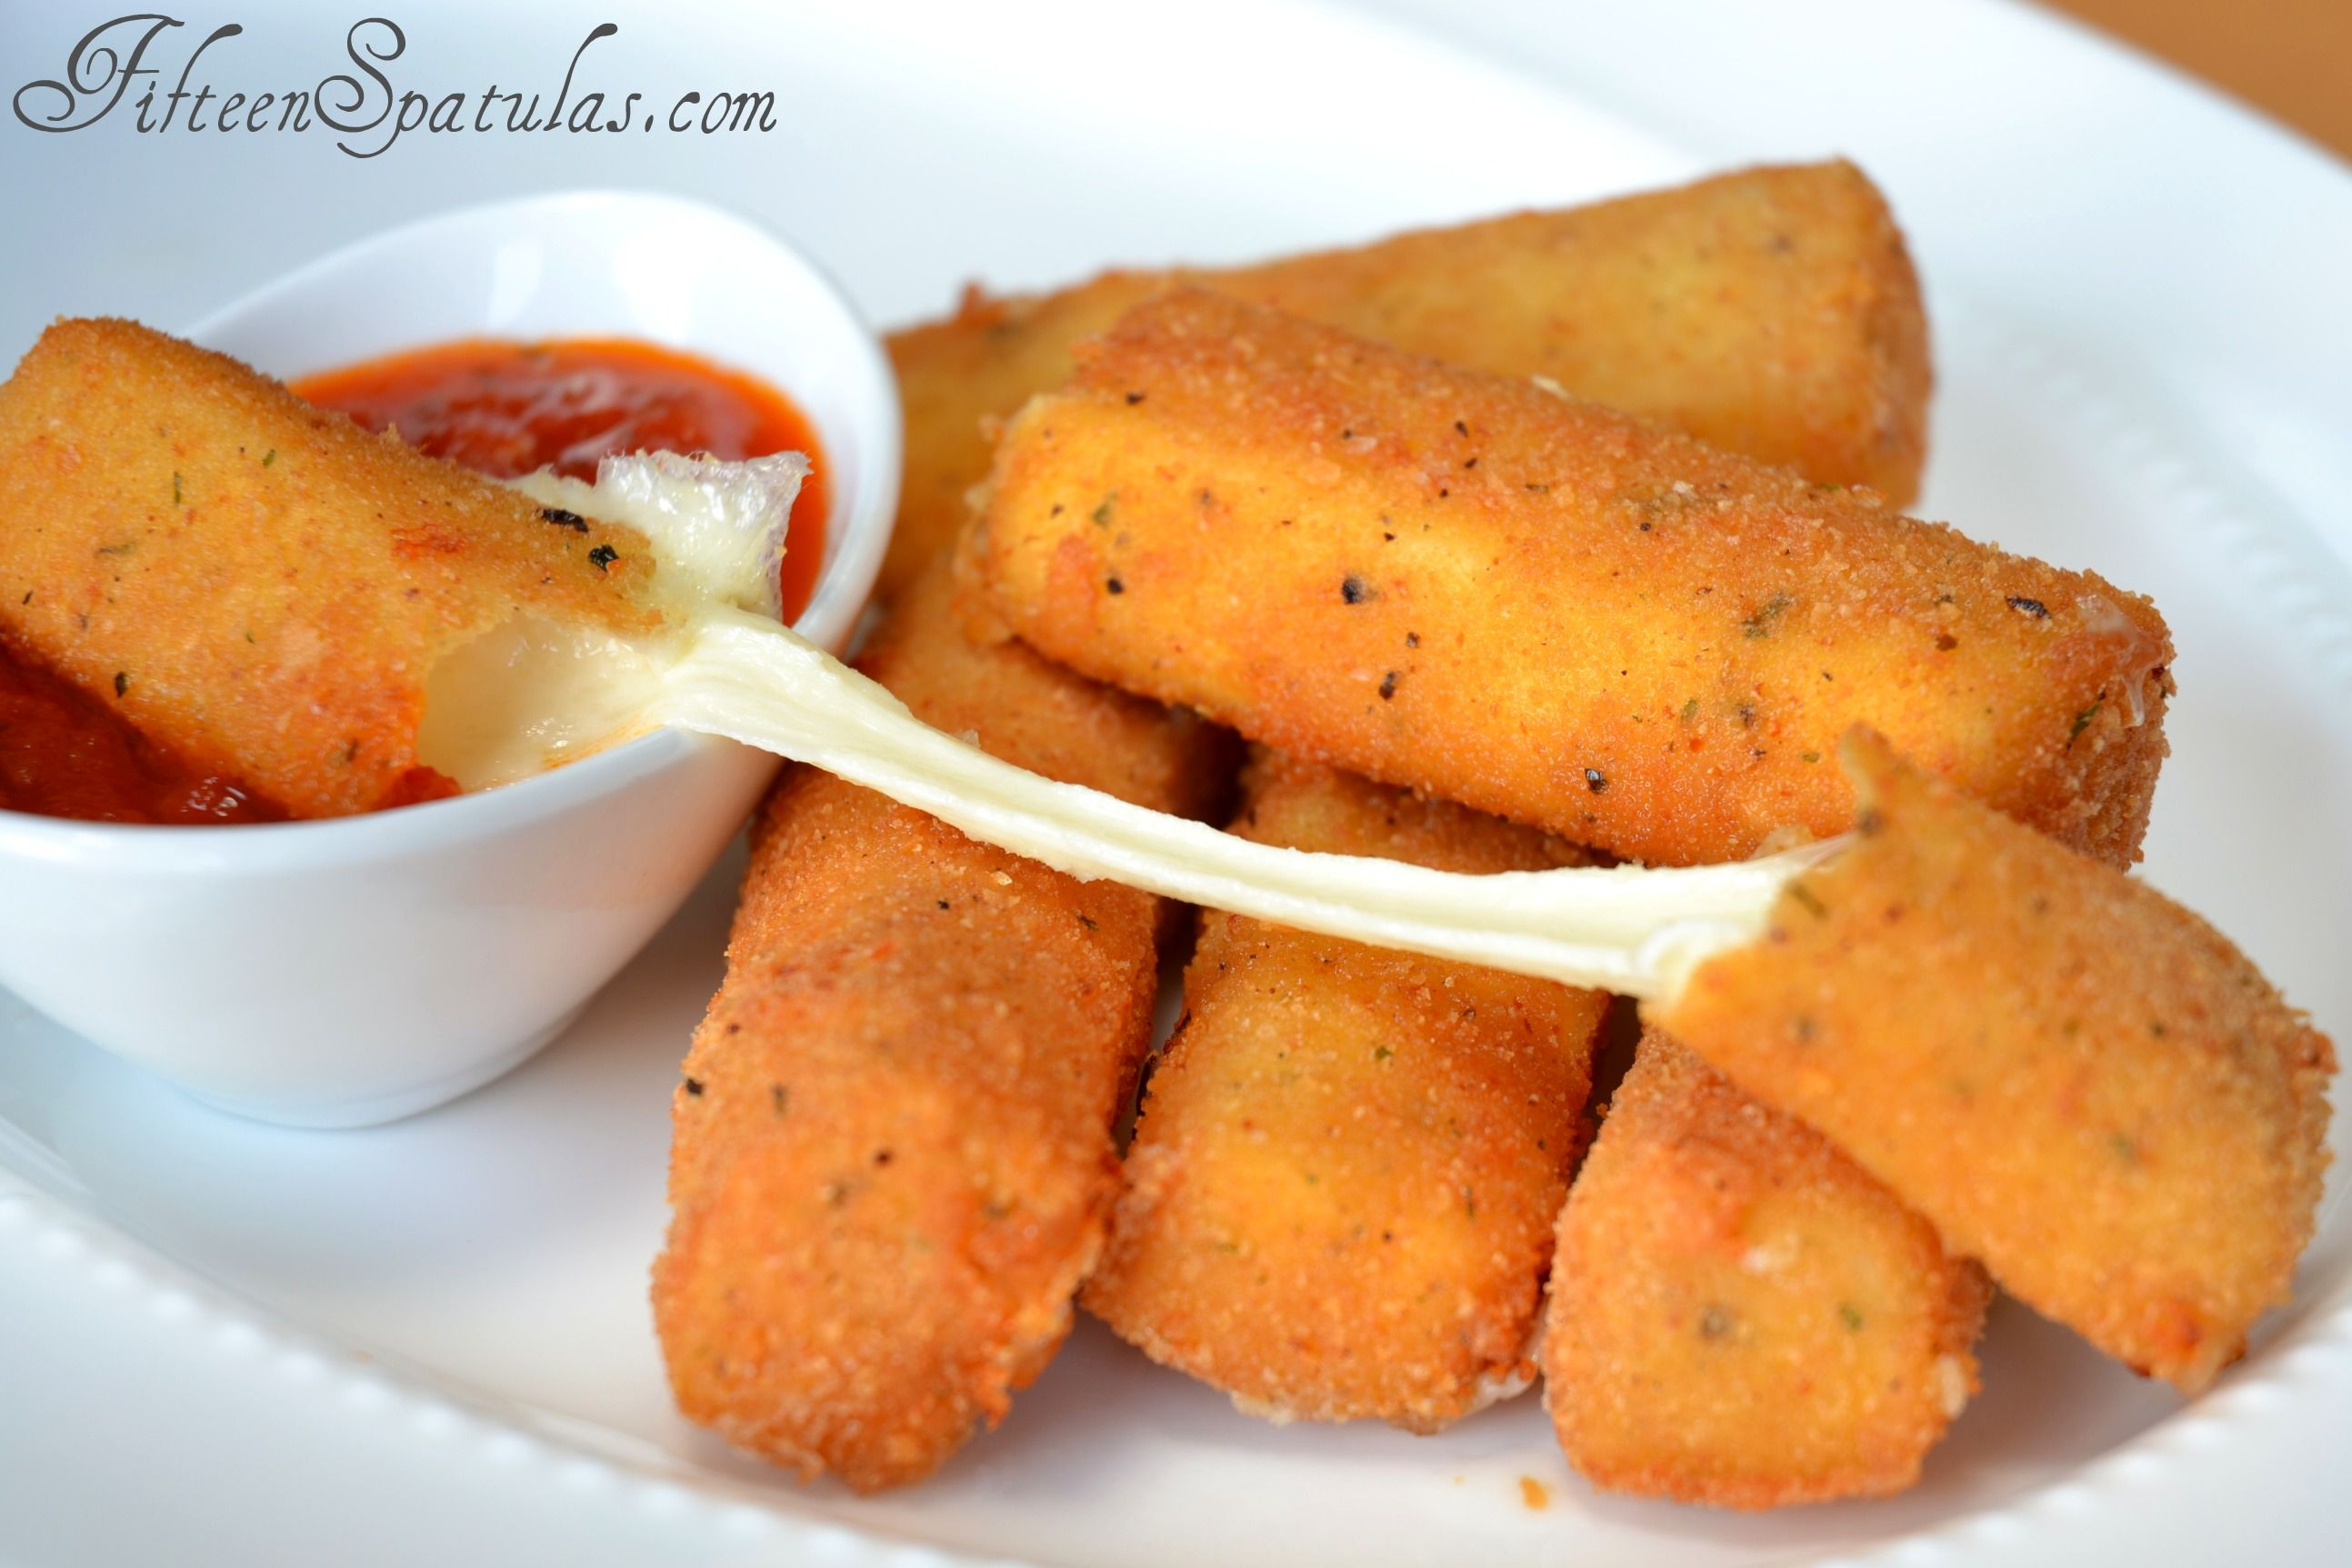 Game Day Nibbles Homemade Mozzarella Sticks Homemade Mozzarella Sticks Food Easy Cheese Recipes